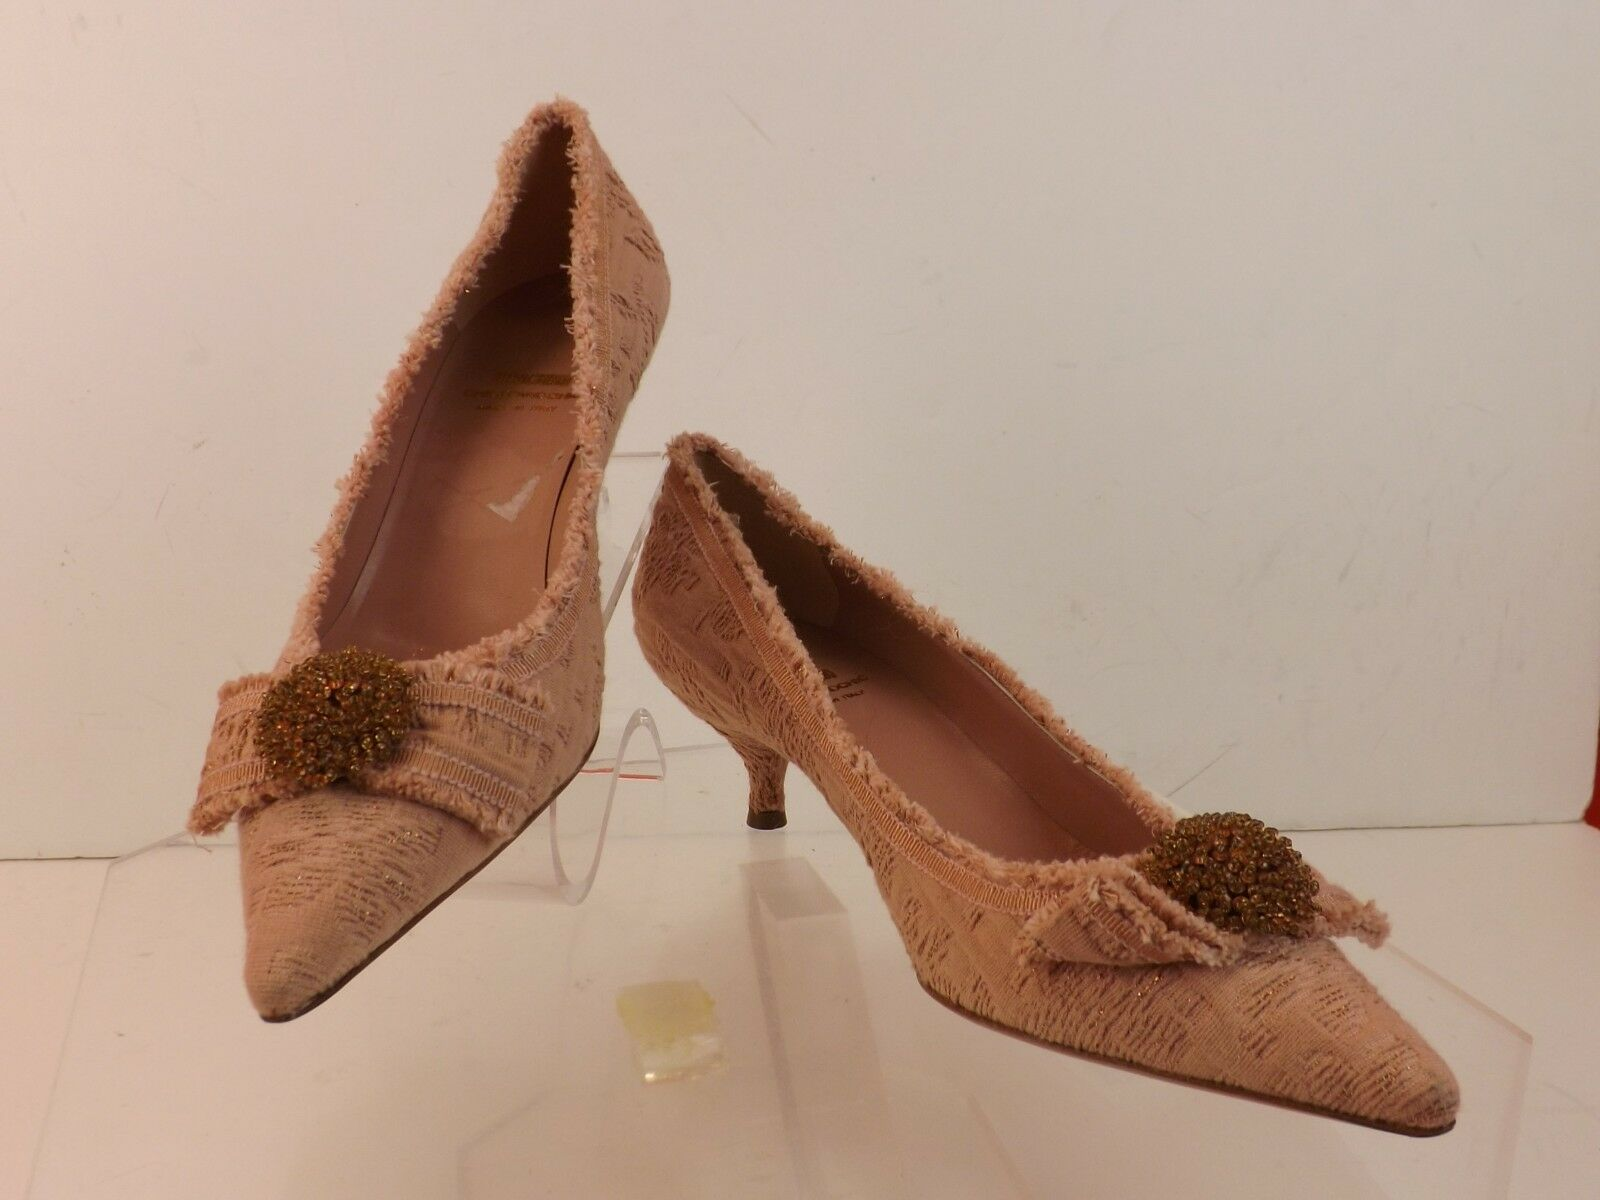 NWB MOSCHINO CANVAS CHEAPANDCHIC DUSTY PINK FLORAL CANVAS MOSCHINO BOW KITTEN HEEL 39.5 ITALY 62148c